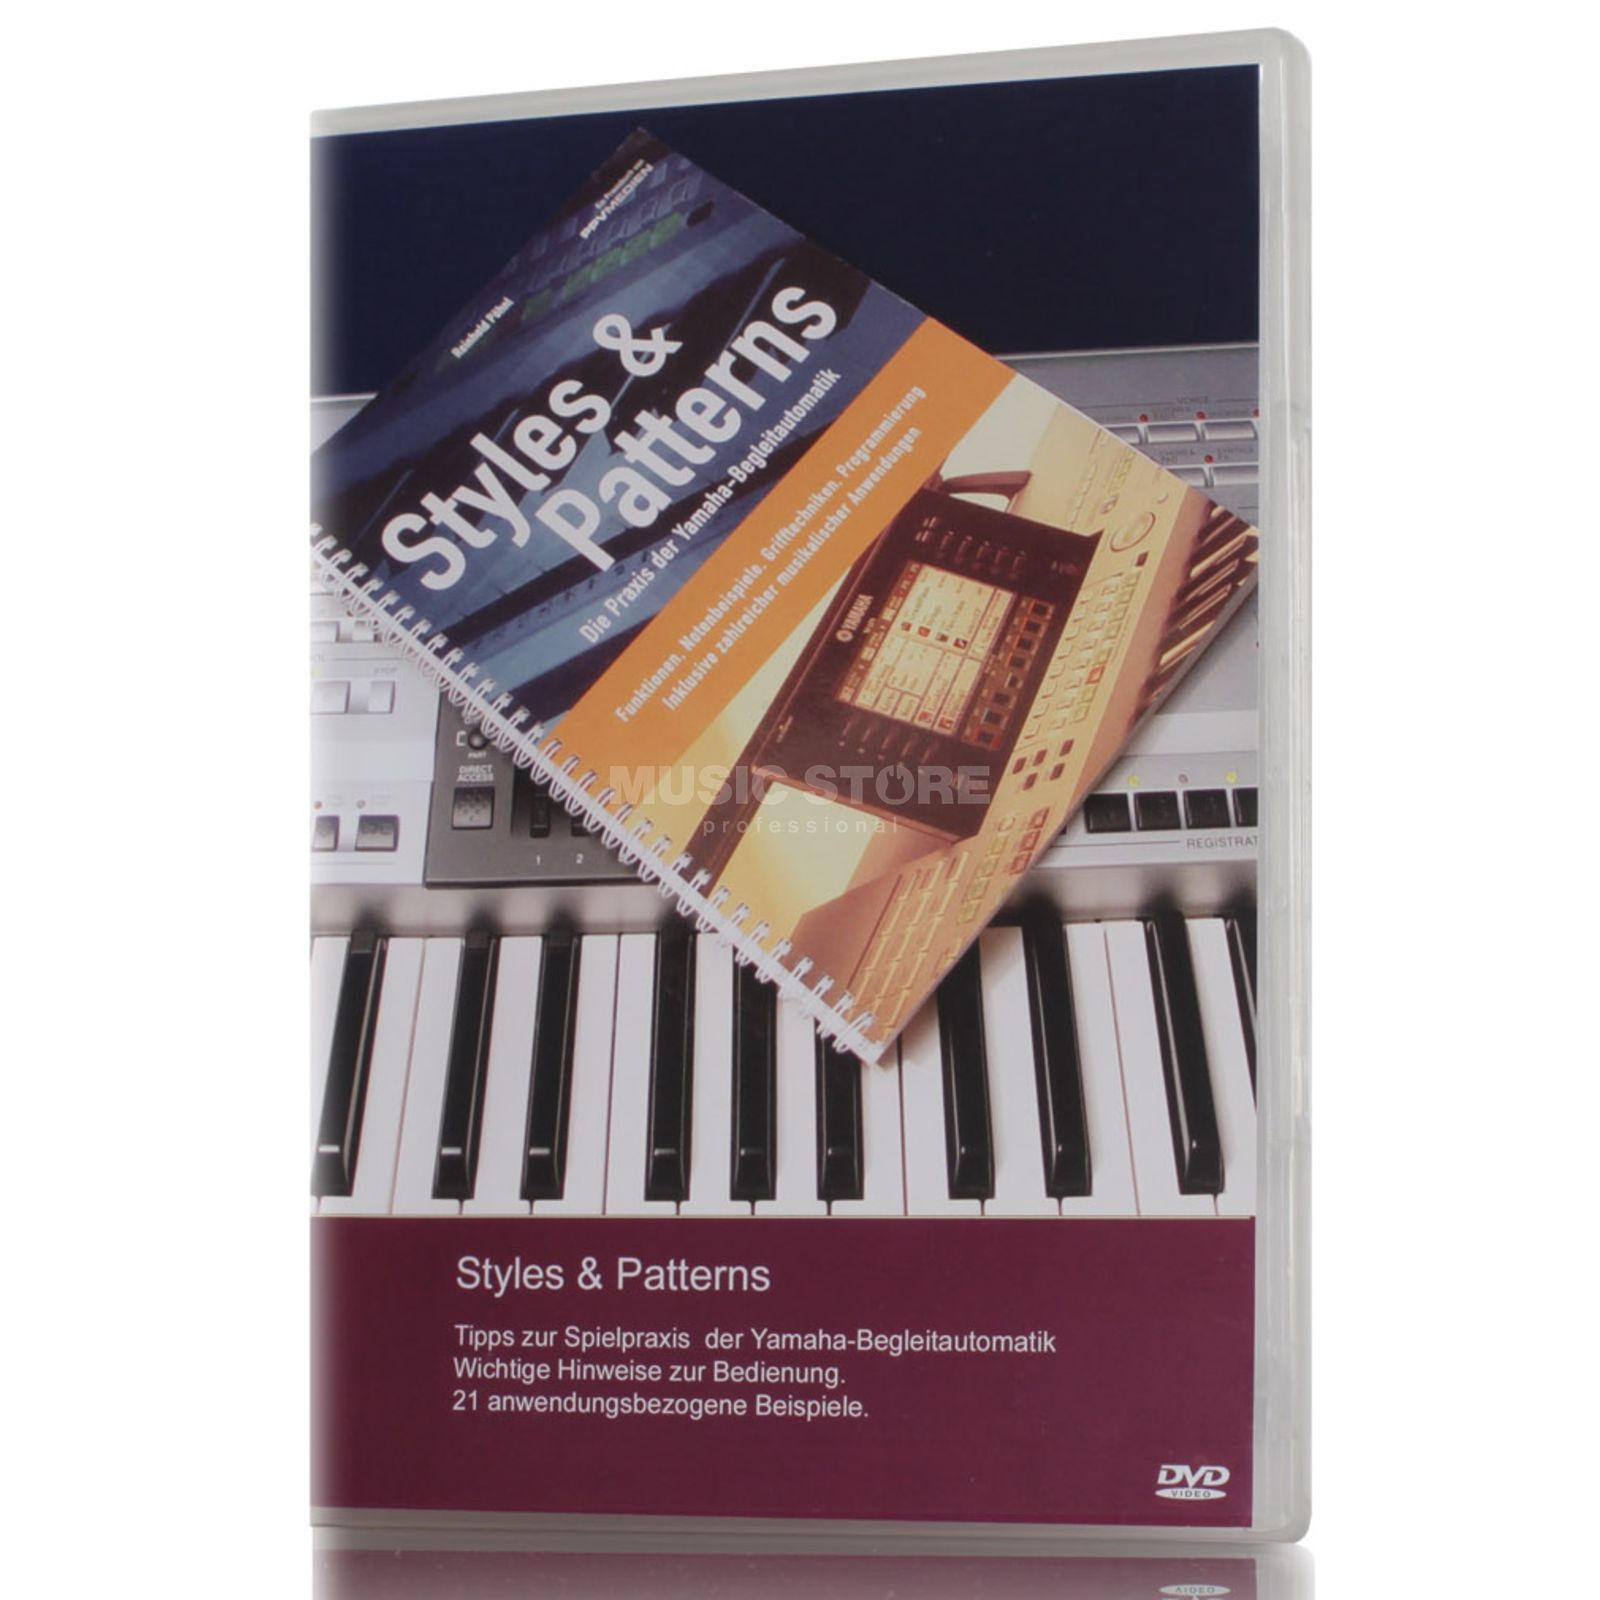 Keyboard-Seminare Styles & Patterns Video DVD for all Yamaha Keyboards Produktbillede